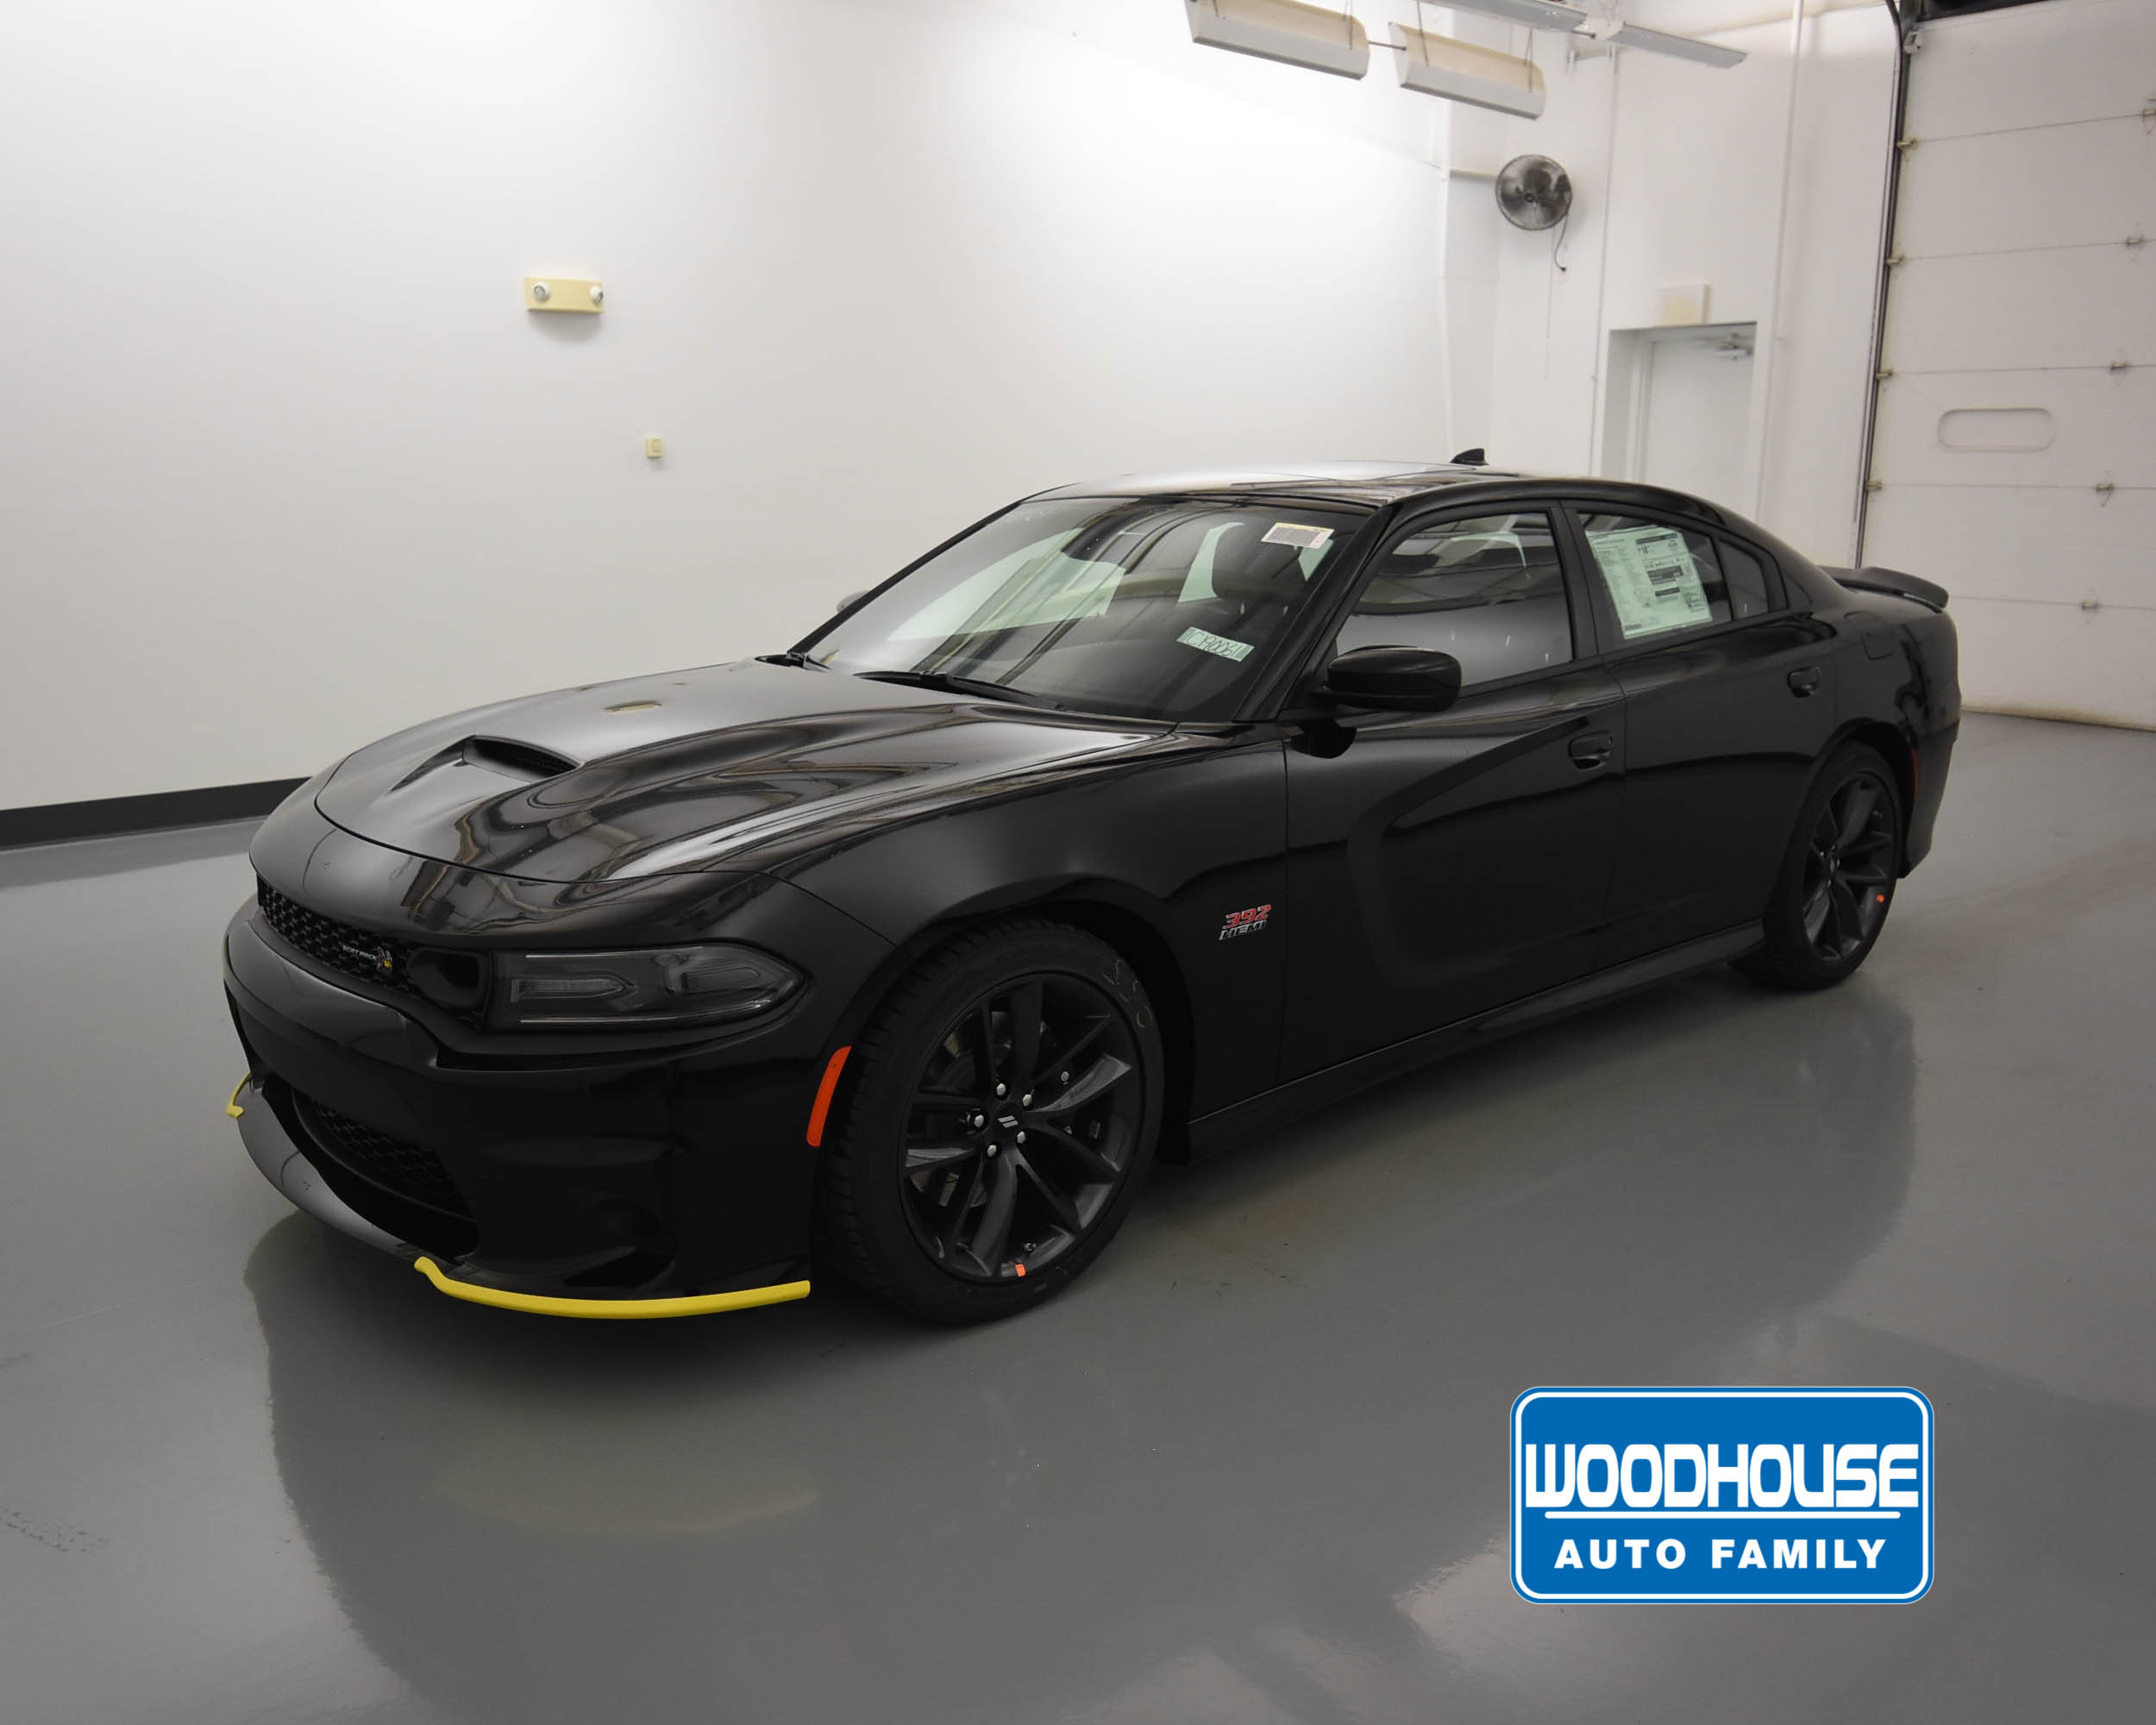 Woodhouse | New 2019 Dodge Charger For Sale | Chrysler Dodge